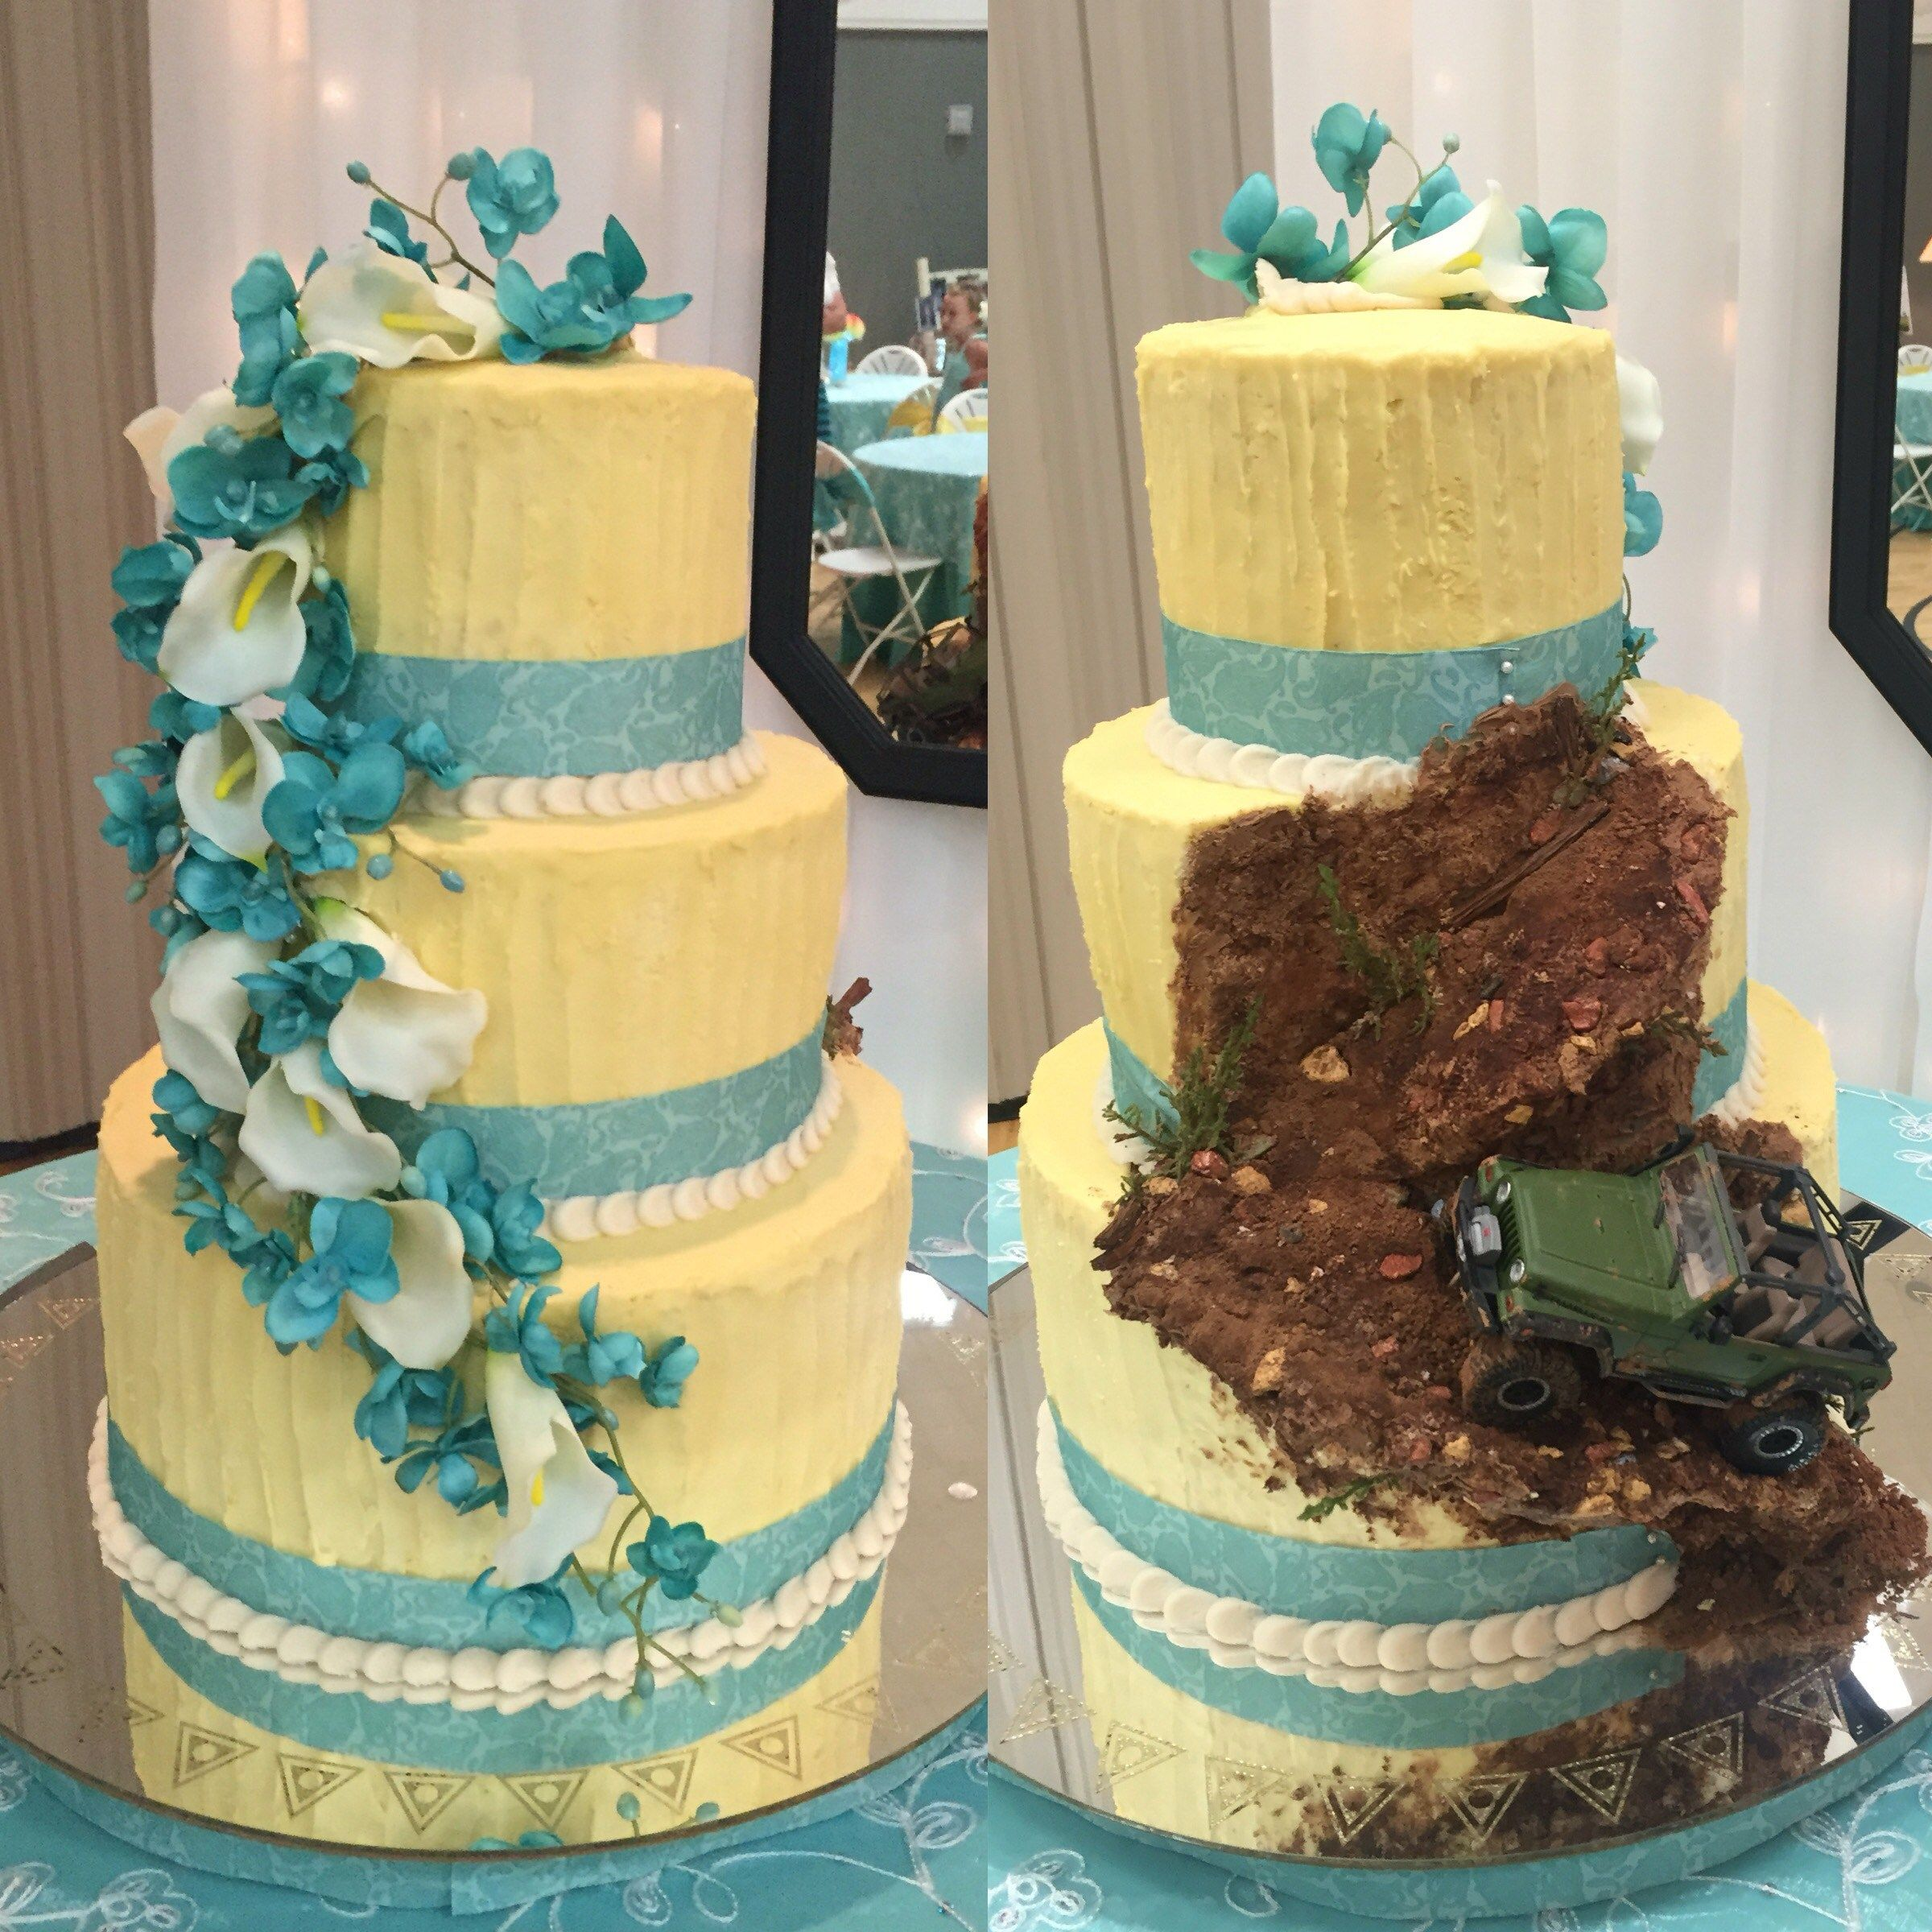 Double sided wedding cake for him and her Combining two wedding